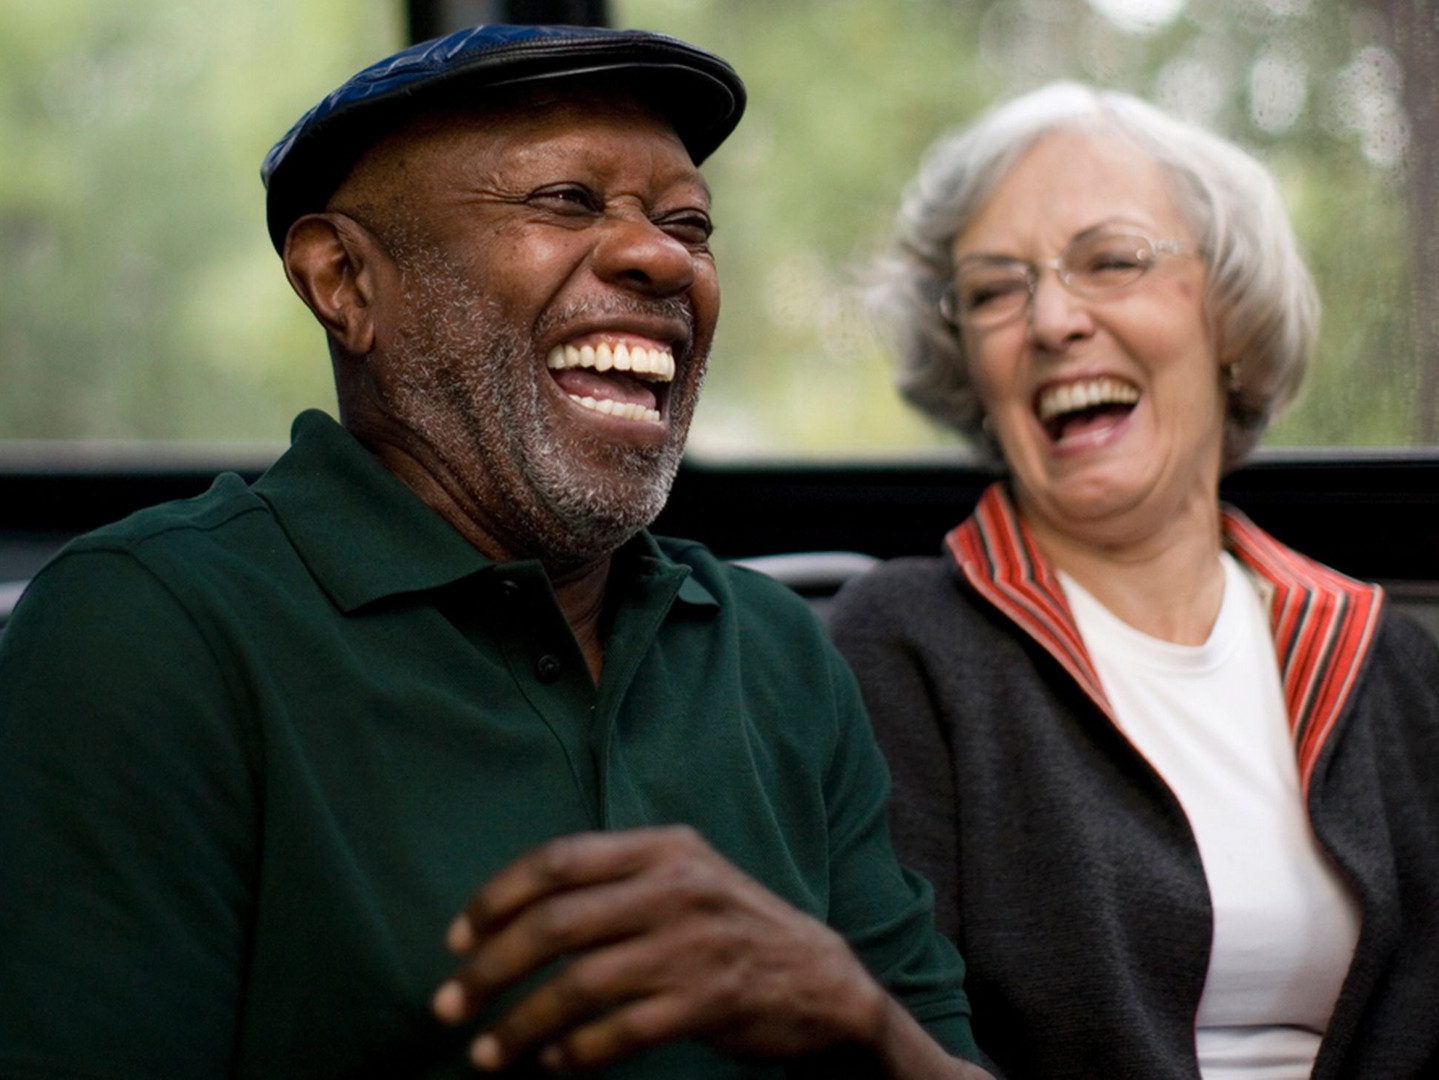 elderly-blk-man-white-woman1.jpg